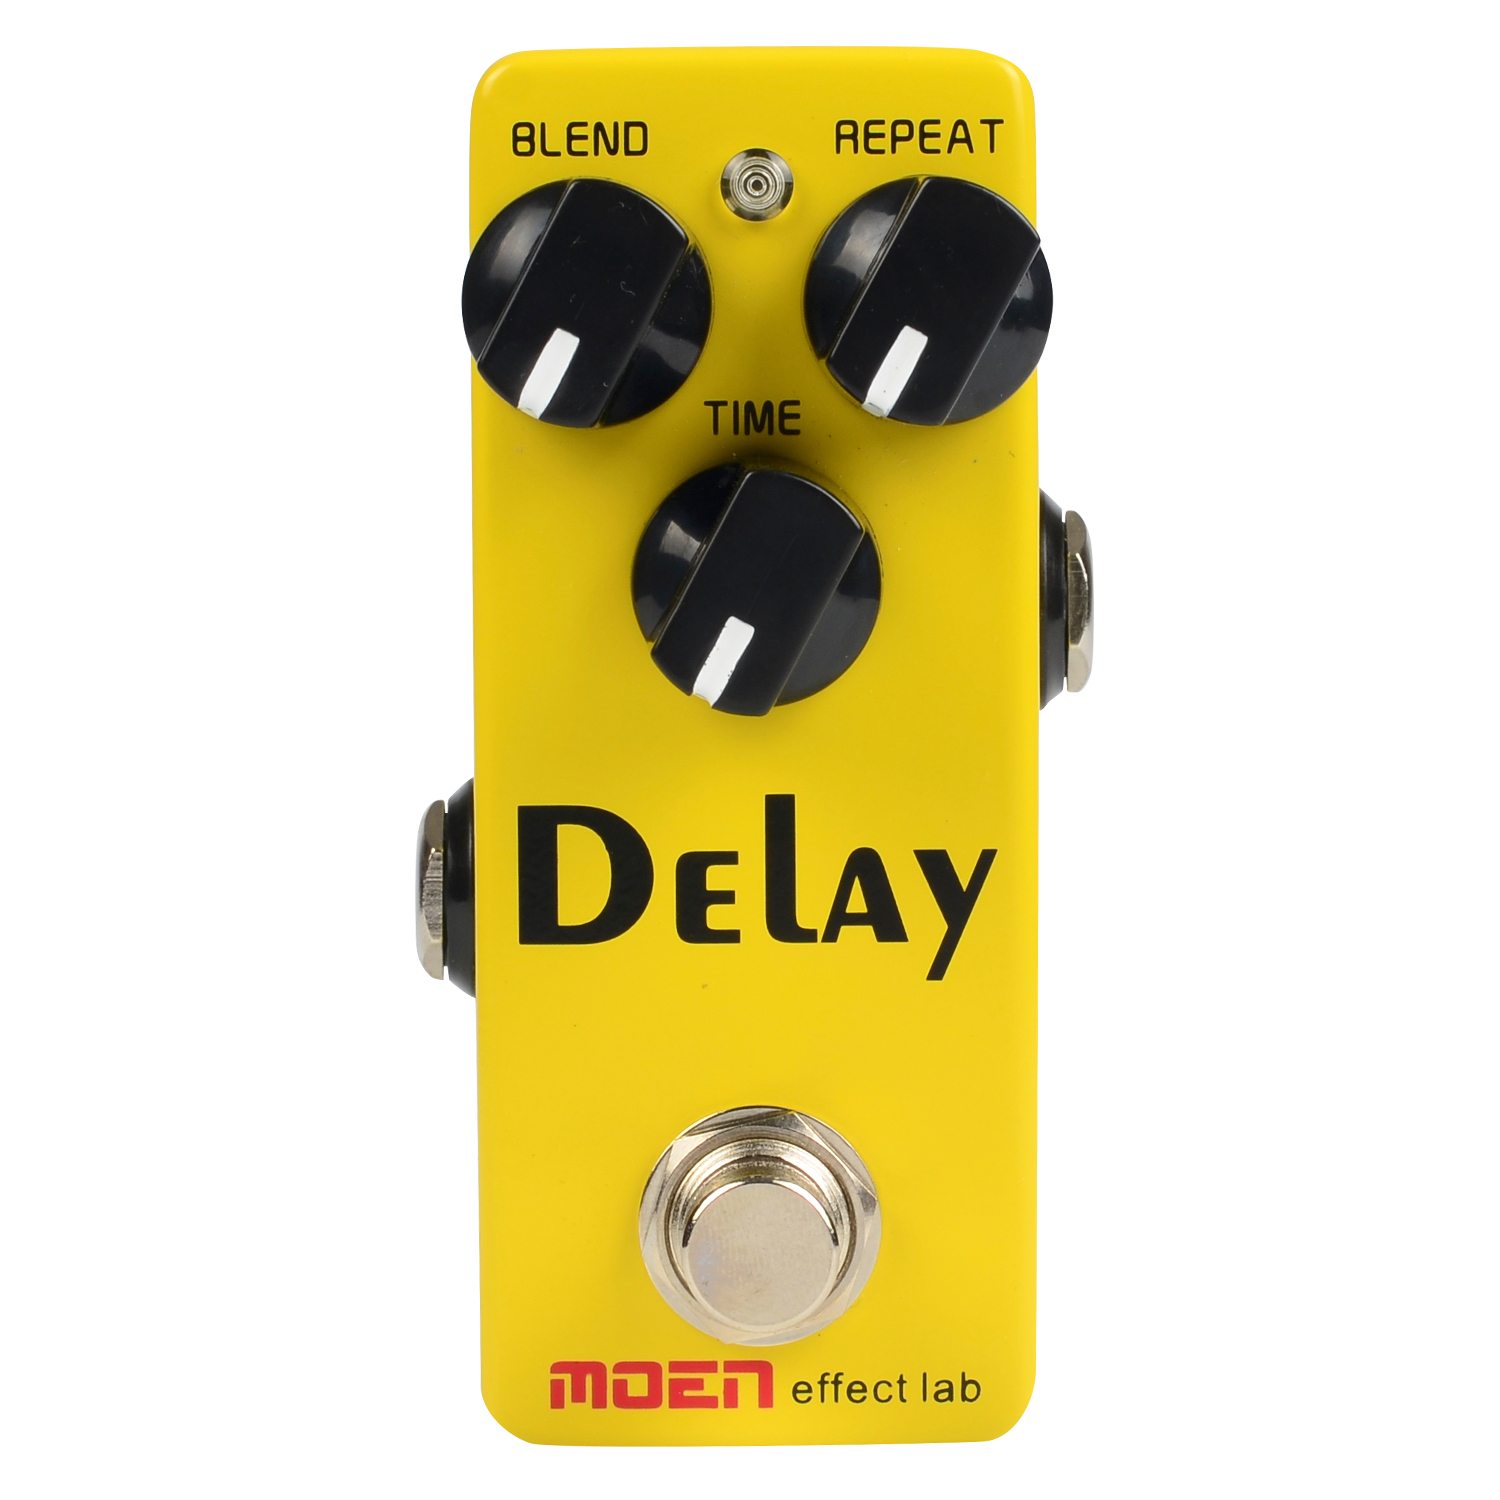 Moen Delay Guitar Effect Pedal for Electric Guitar  Ture Bypass Blend Time Repeat Control Mini Effects Stompbox tomsline alr 3 guitar effect pedal accessories liner aby line selector mini electric guitar effect pedal ture bypass